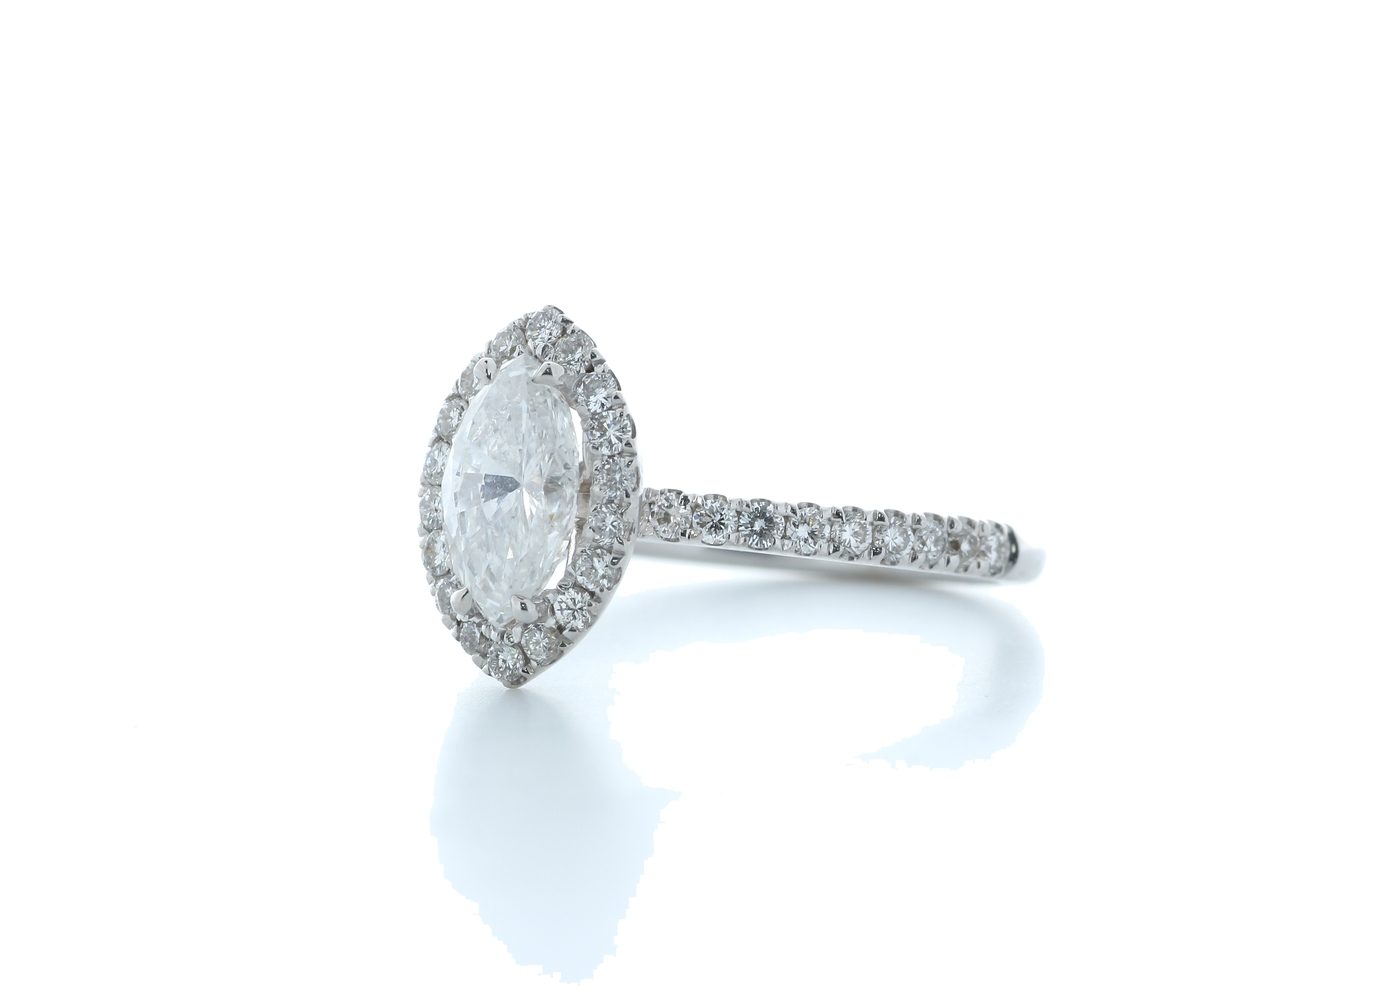 18ct White Gold Marquise Diamond With Halo Setting Ring 1.51 (1.02) Carats - Image 2 of 5